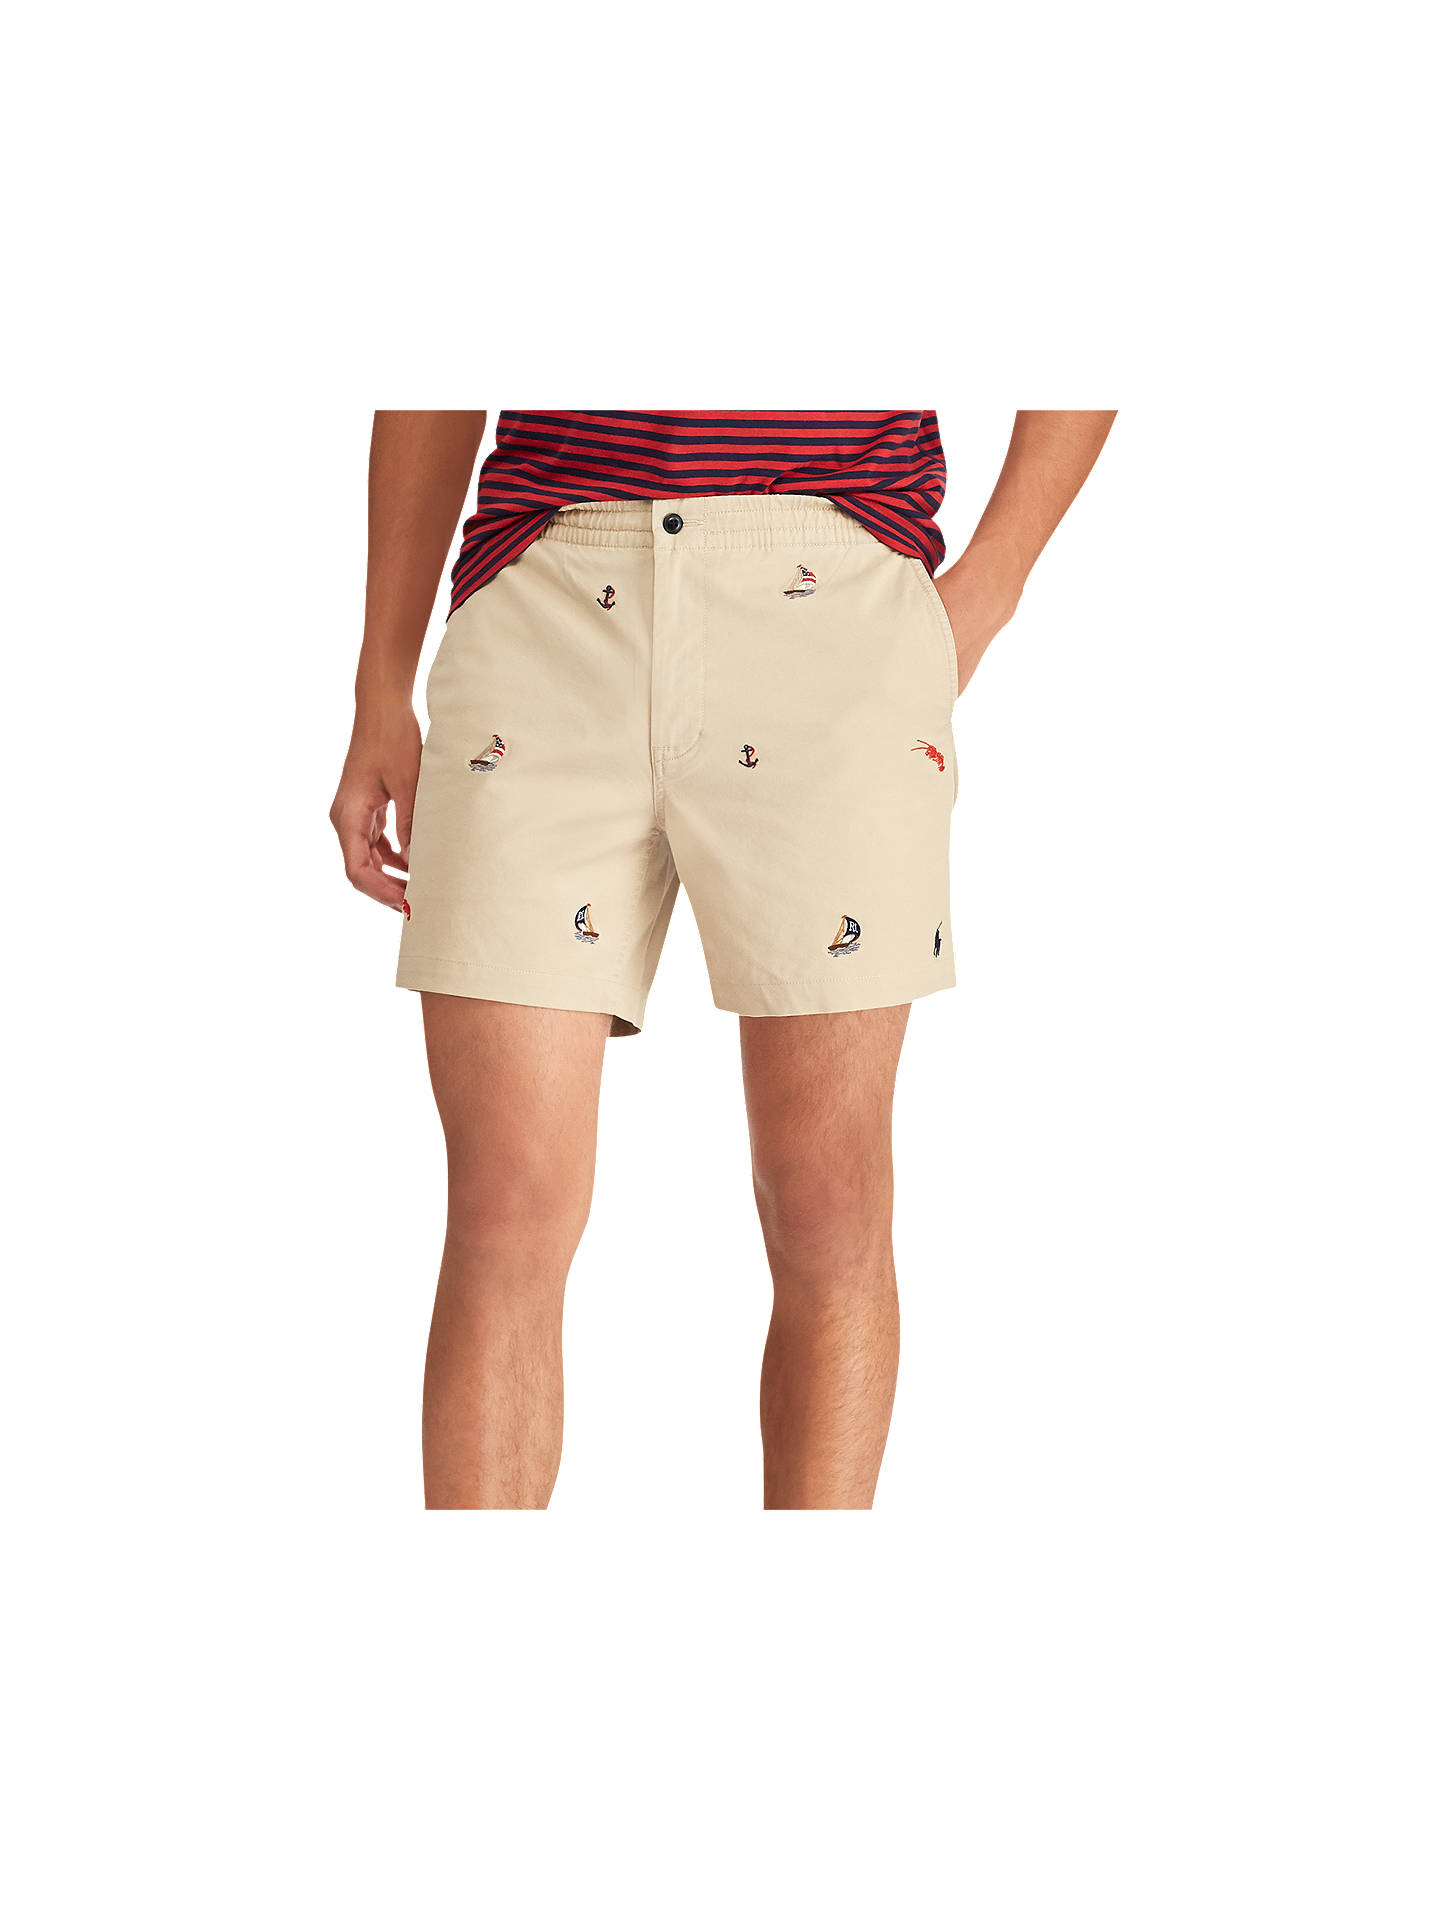 196eab496 Buy Polo Ralph Lauren Prepster Flat Embroidered Boat Shorts